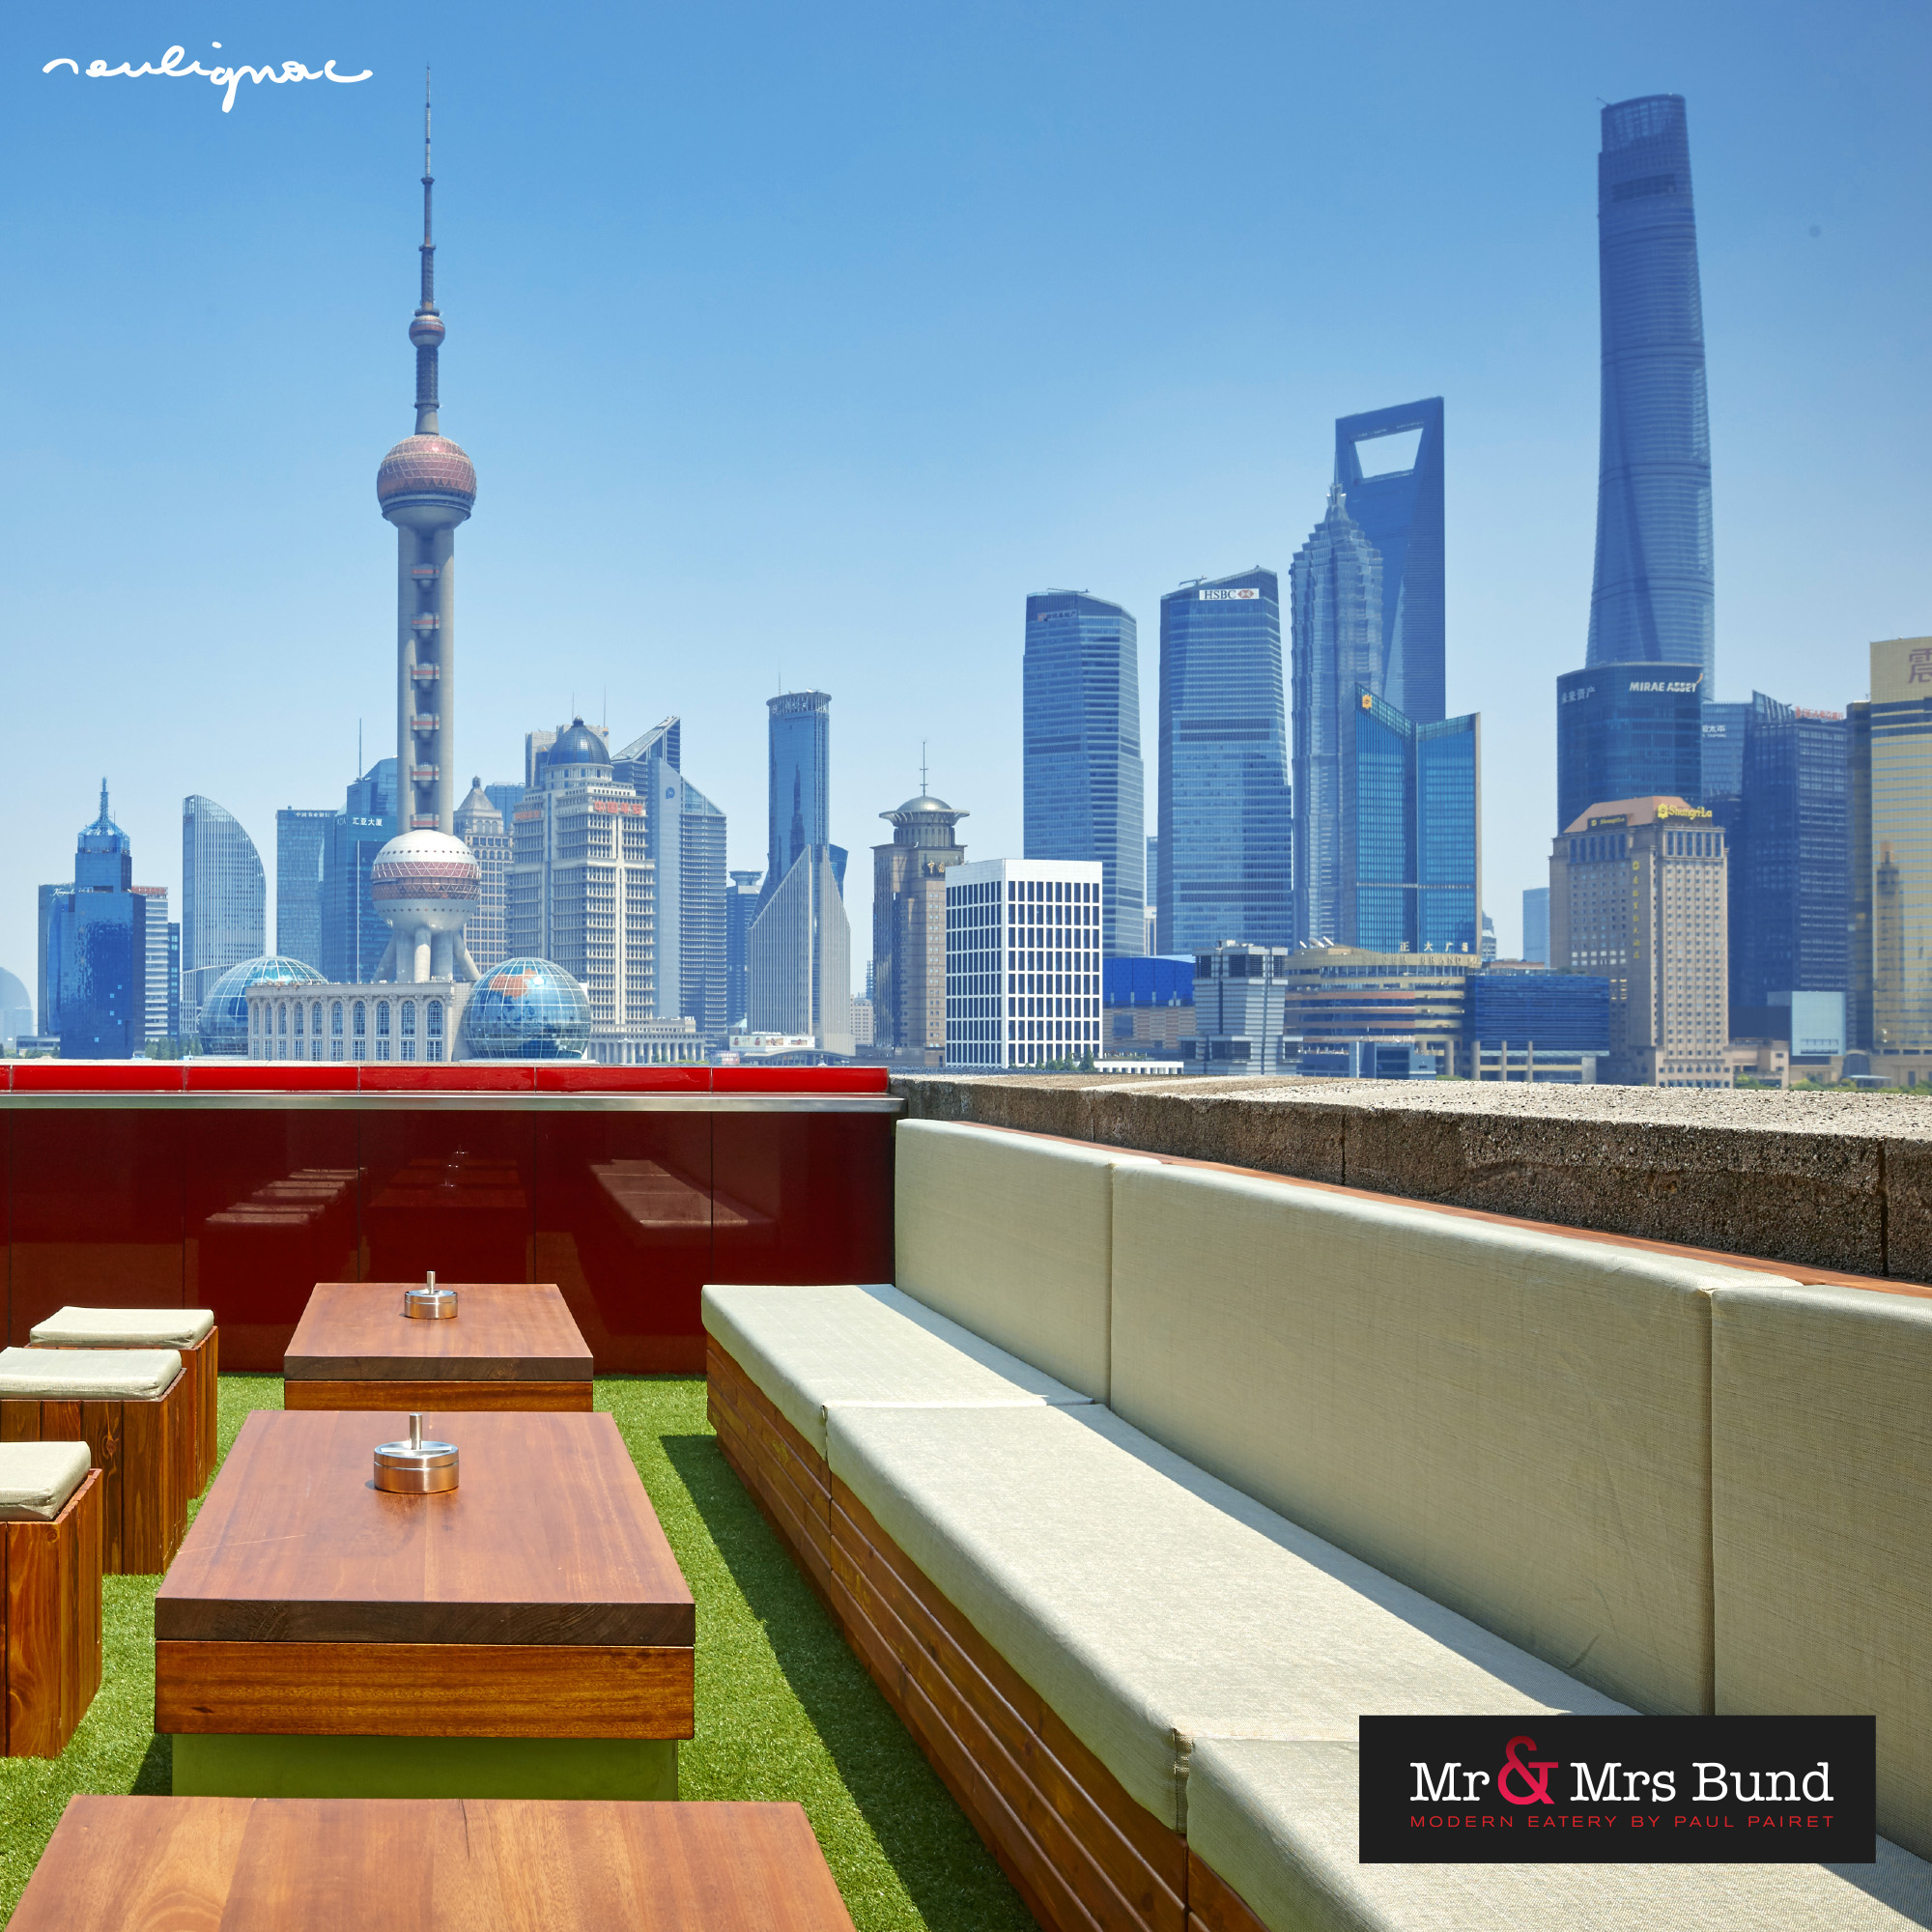 Mr & Mrs Bund Shanghai, Modern Eatery by Paul Pairet, François Soulignac, Creative Direction & Art Direction, VOL Group China